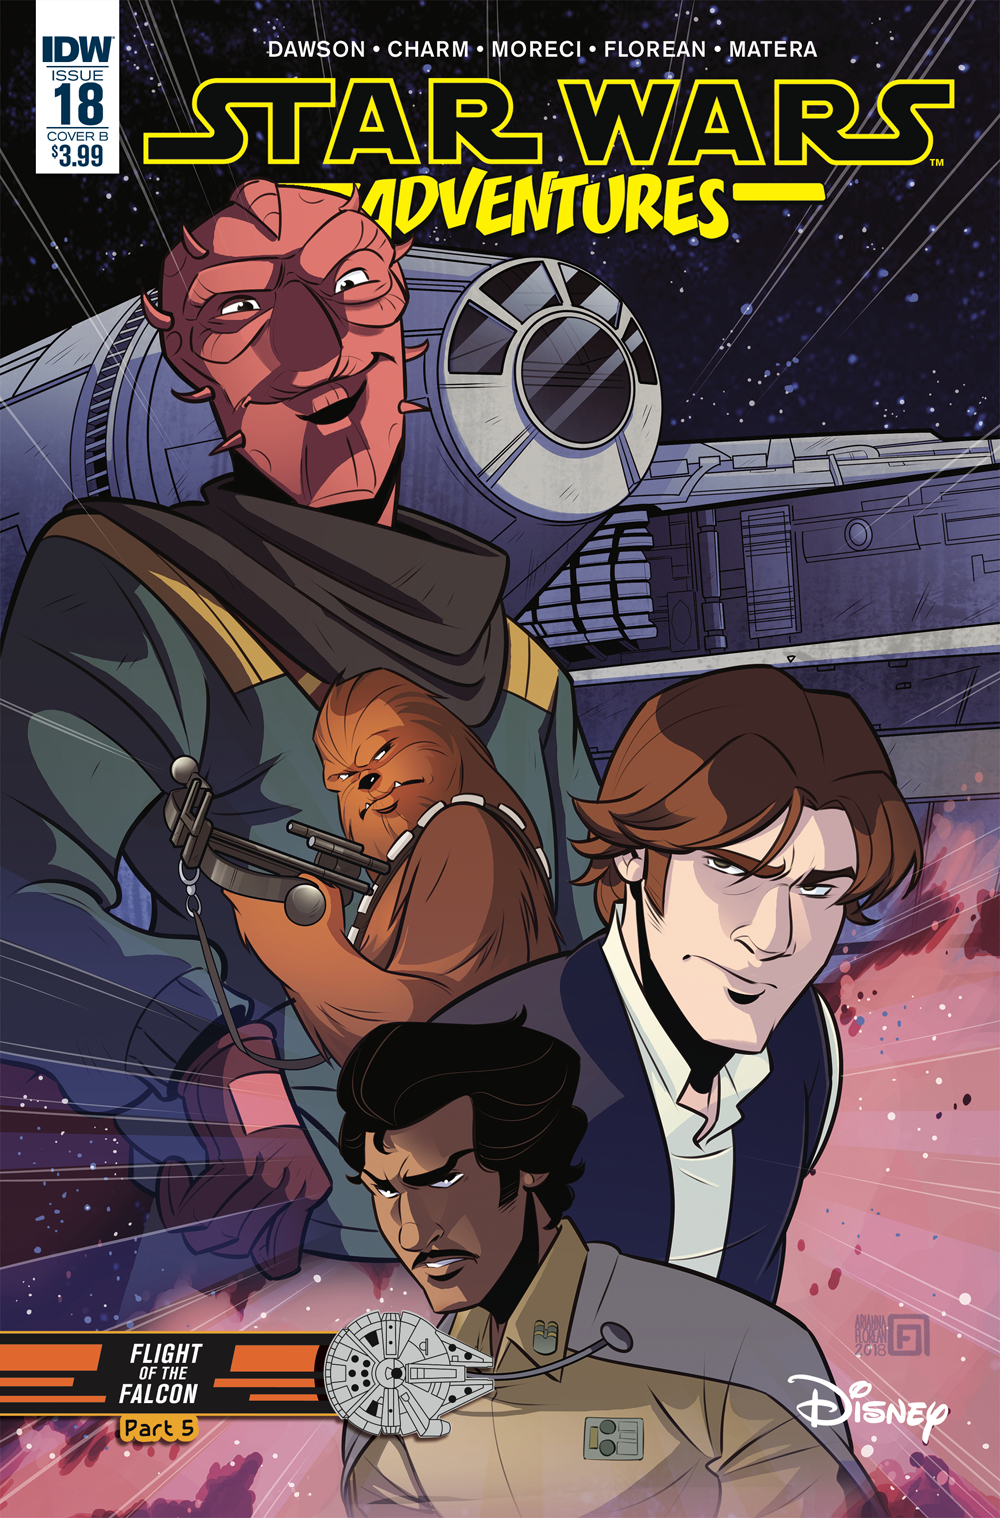 STAR WARS ADVENTURES #18 CVR B FLOREAN